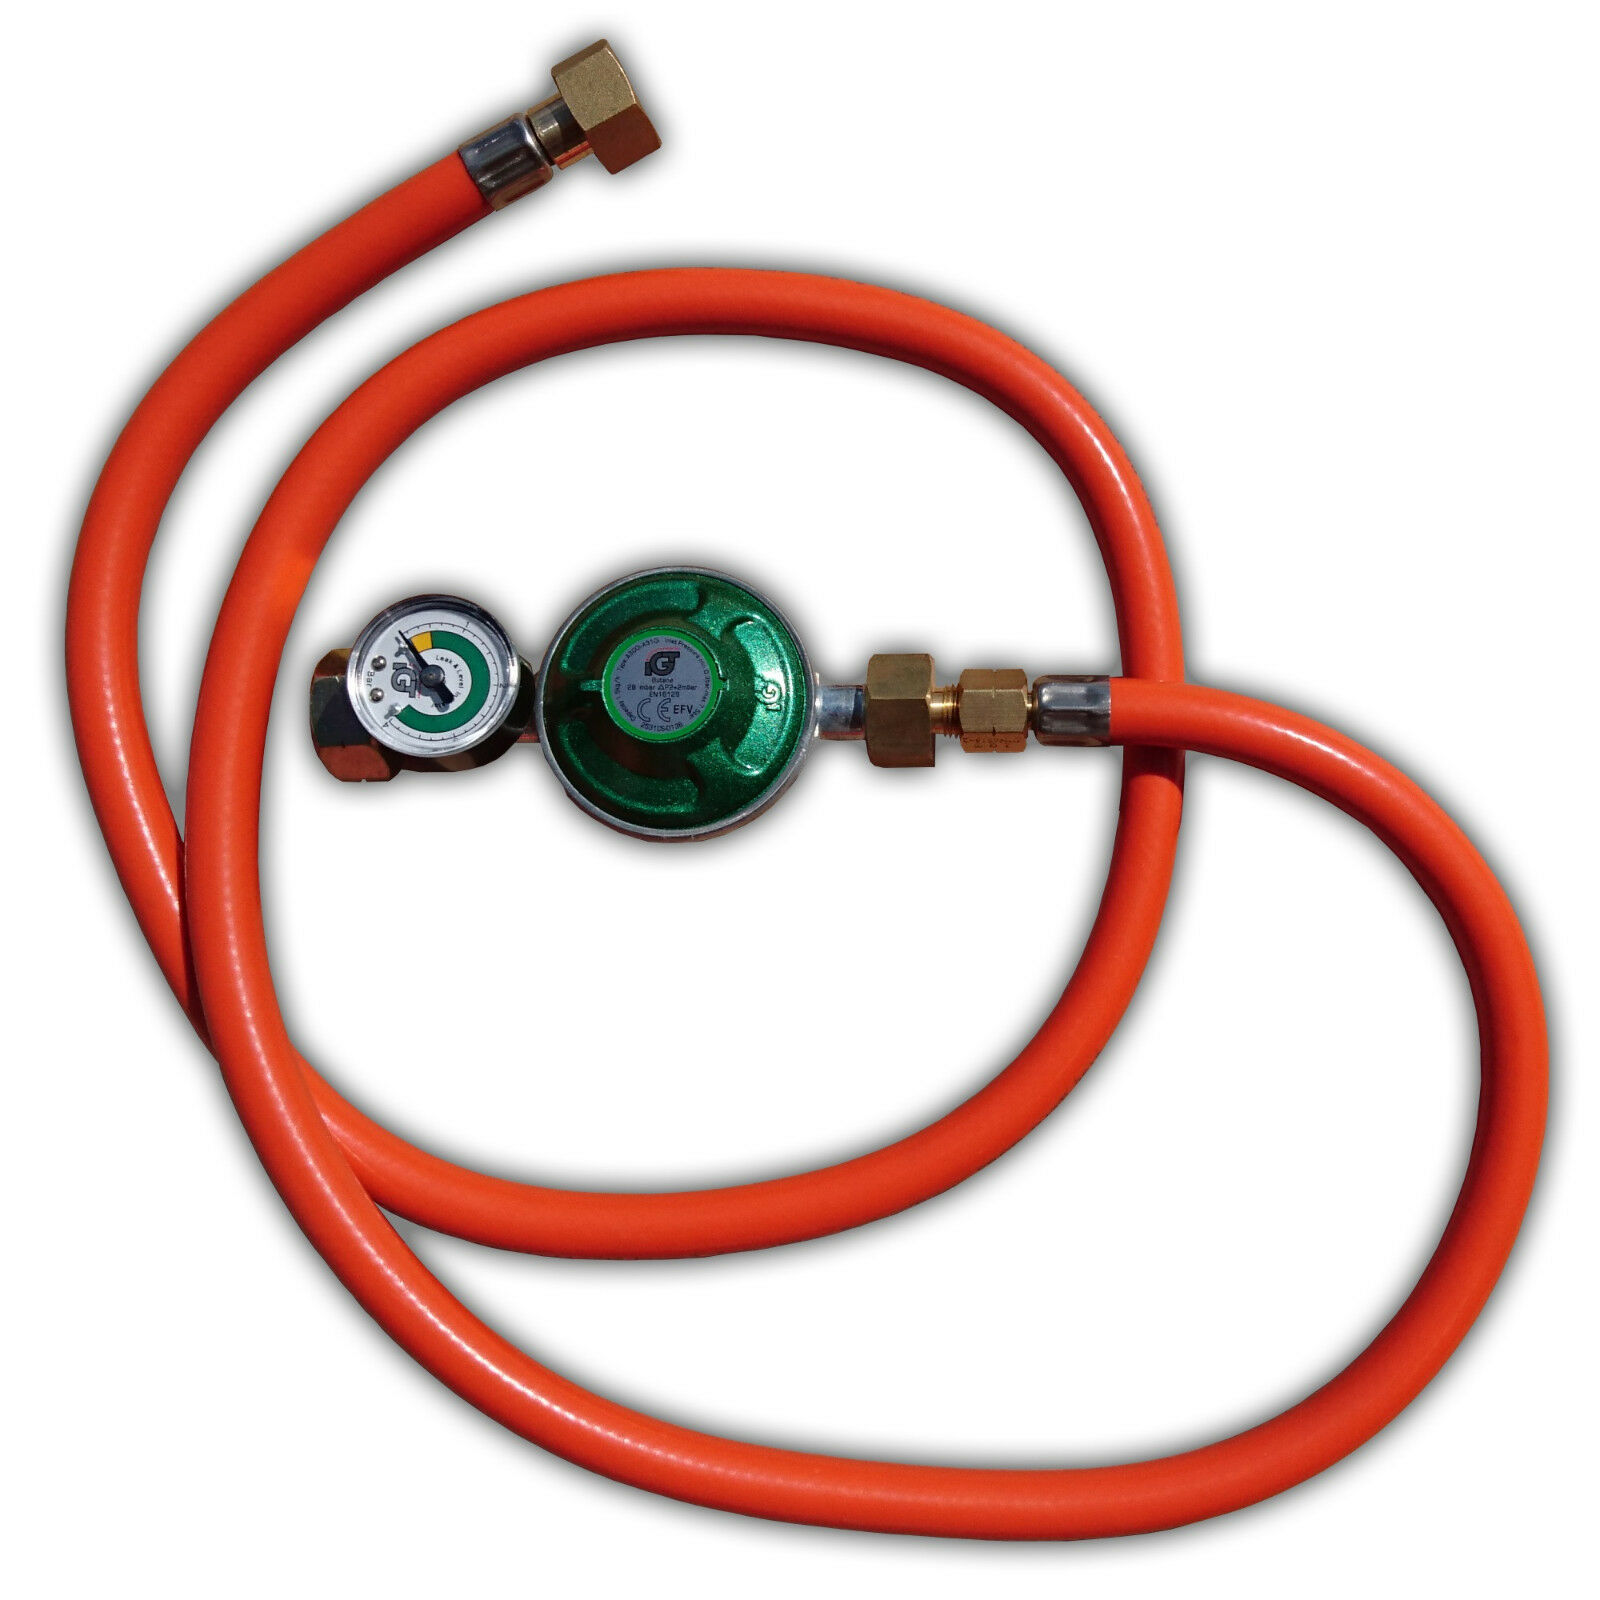 Gas Regulator   Hose Set 30 Millibar with 1 2 Inch Connection and Manometer